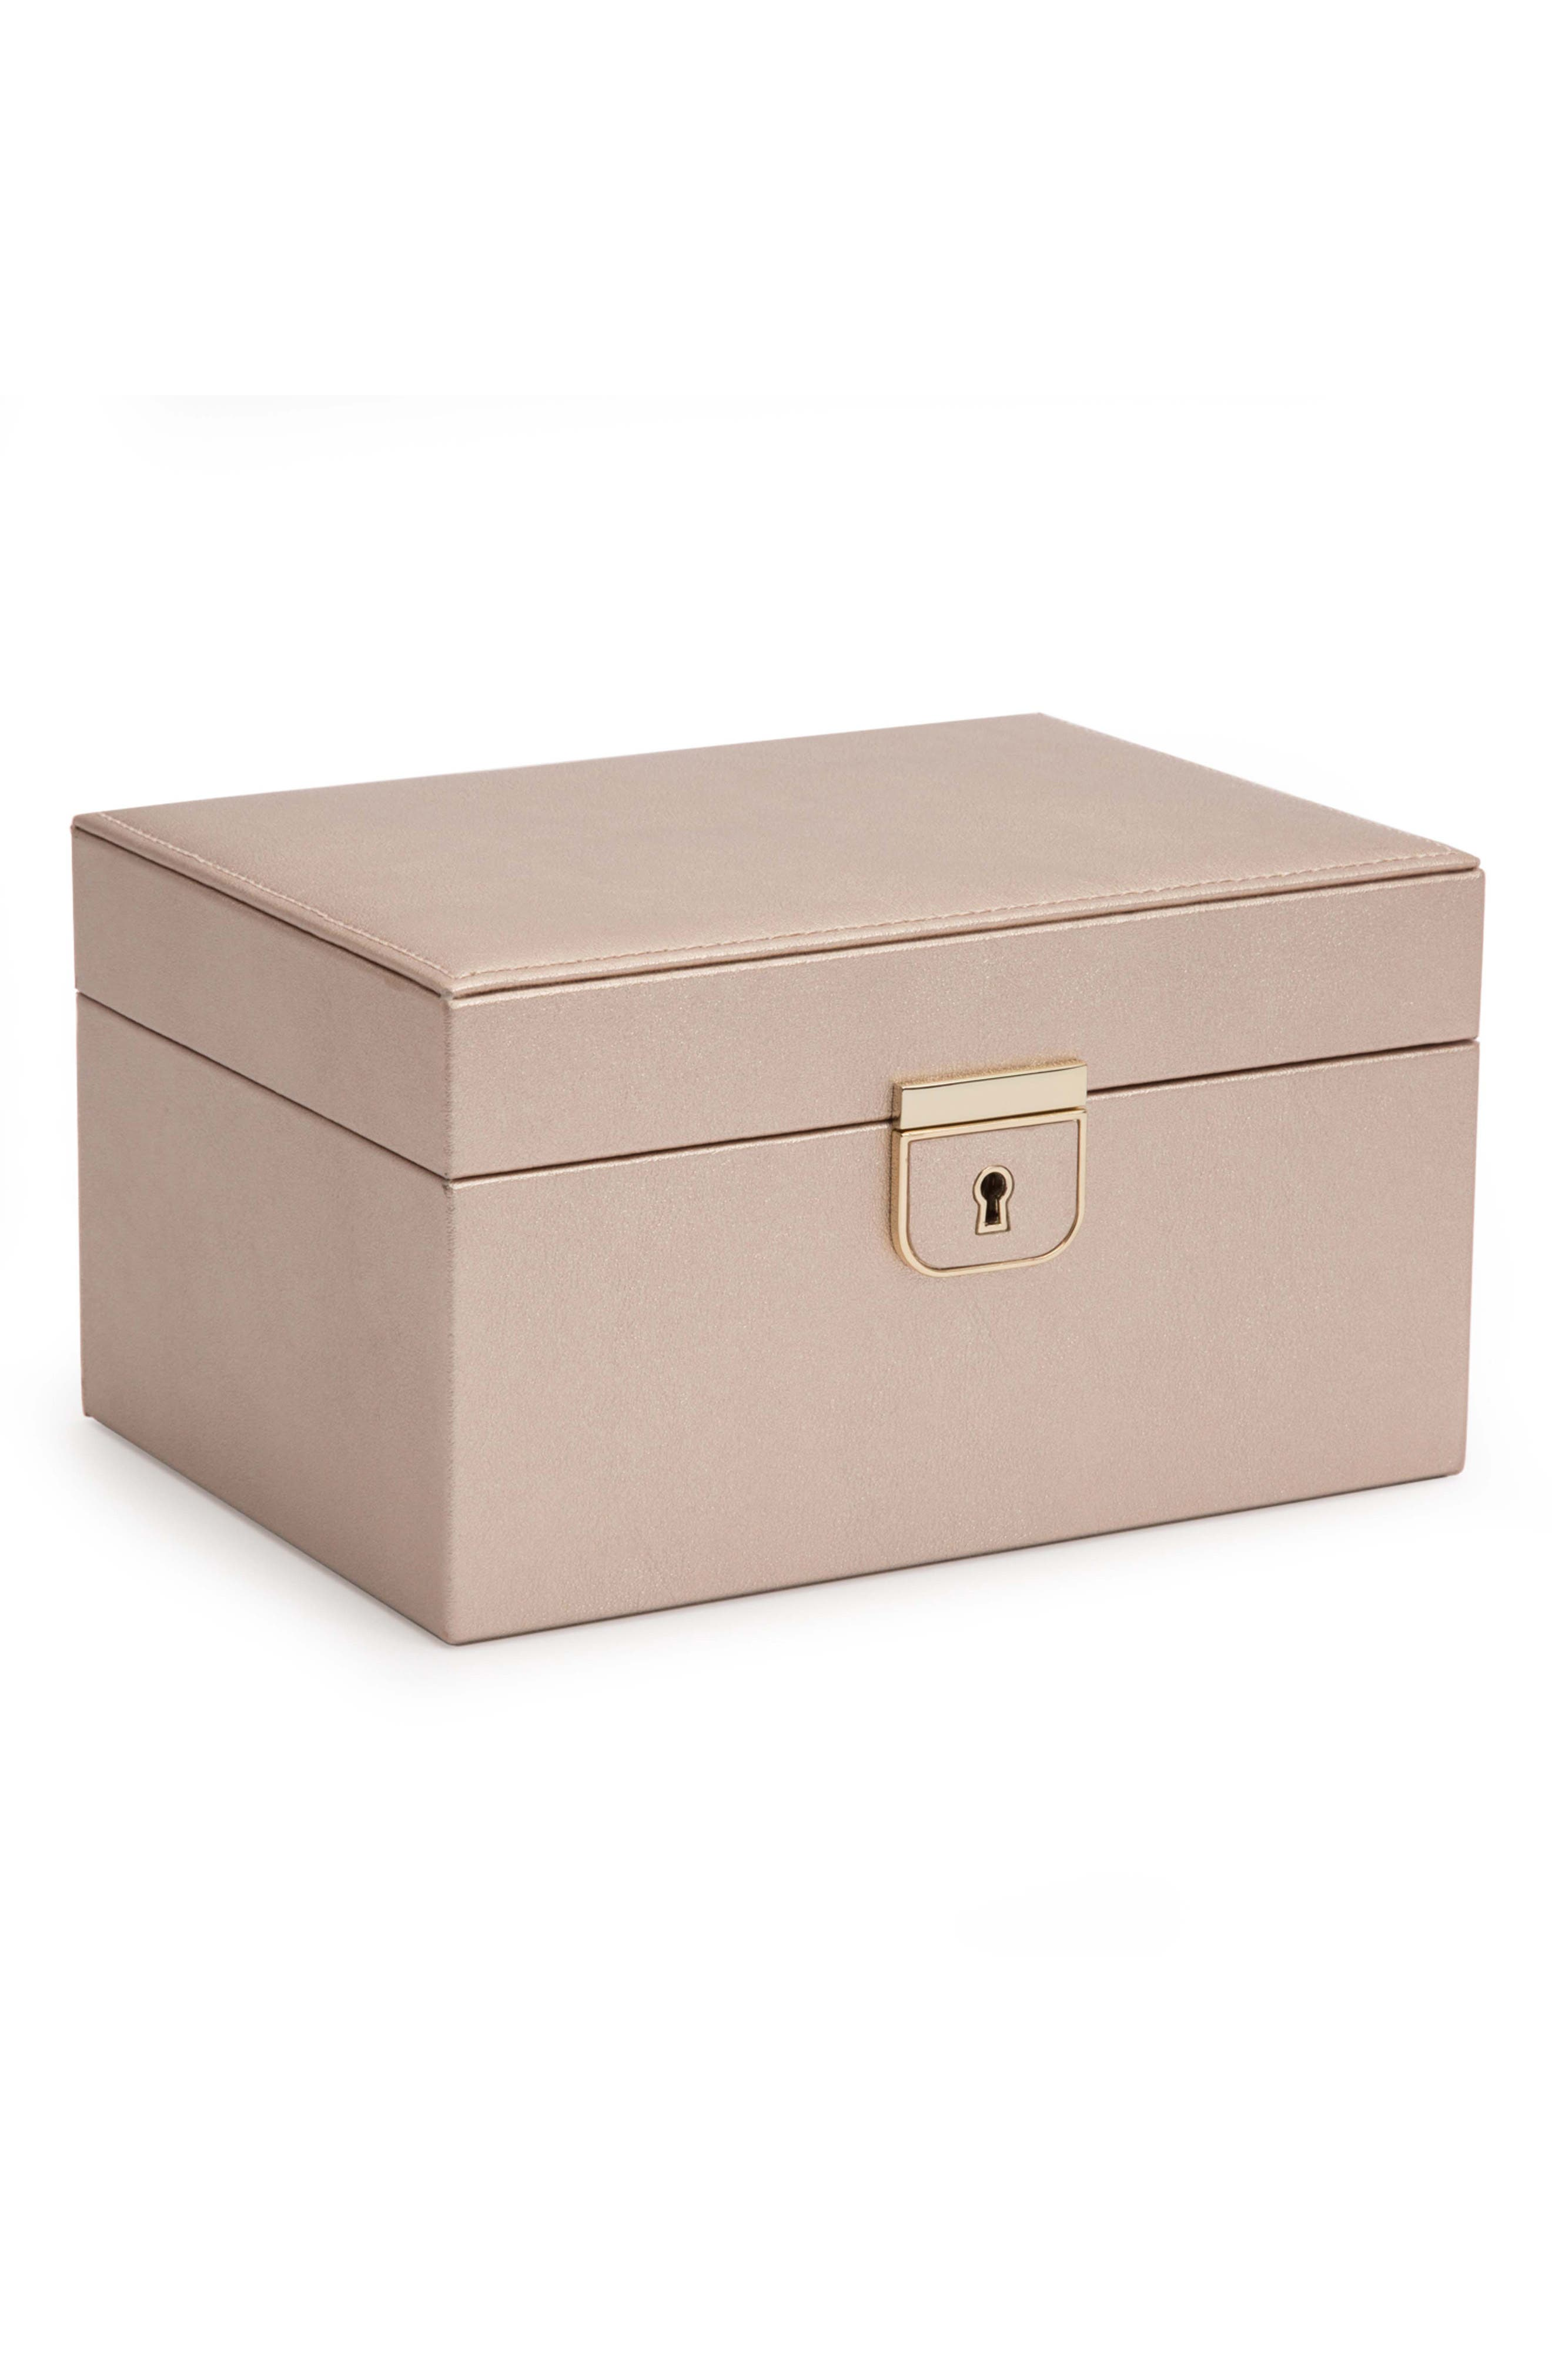 Palermo Small Jewelry Box,                             Alternate thumbnail 4, color,                             ROSE GOLD